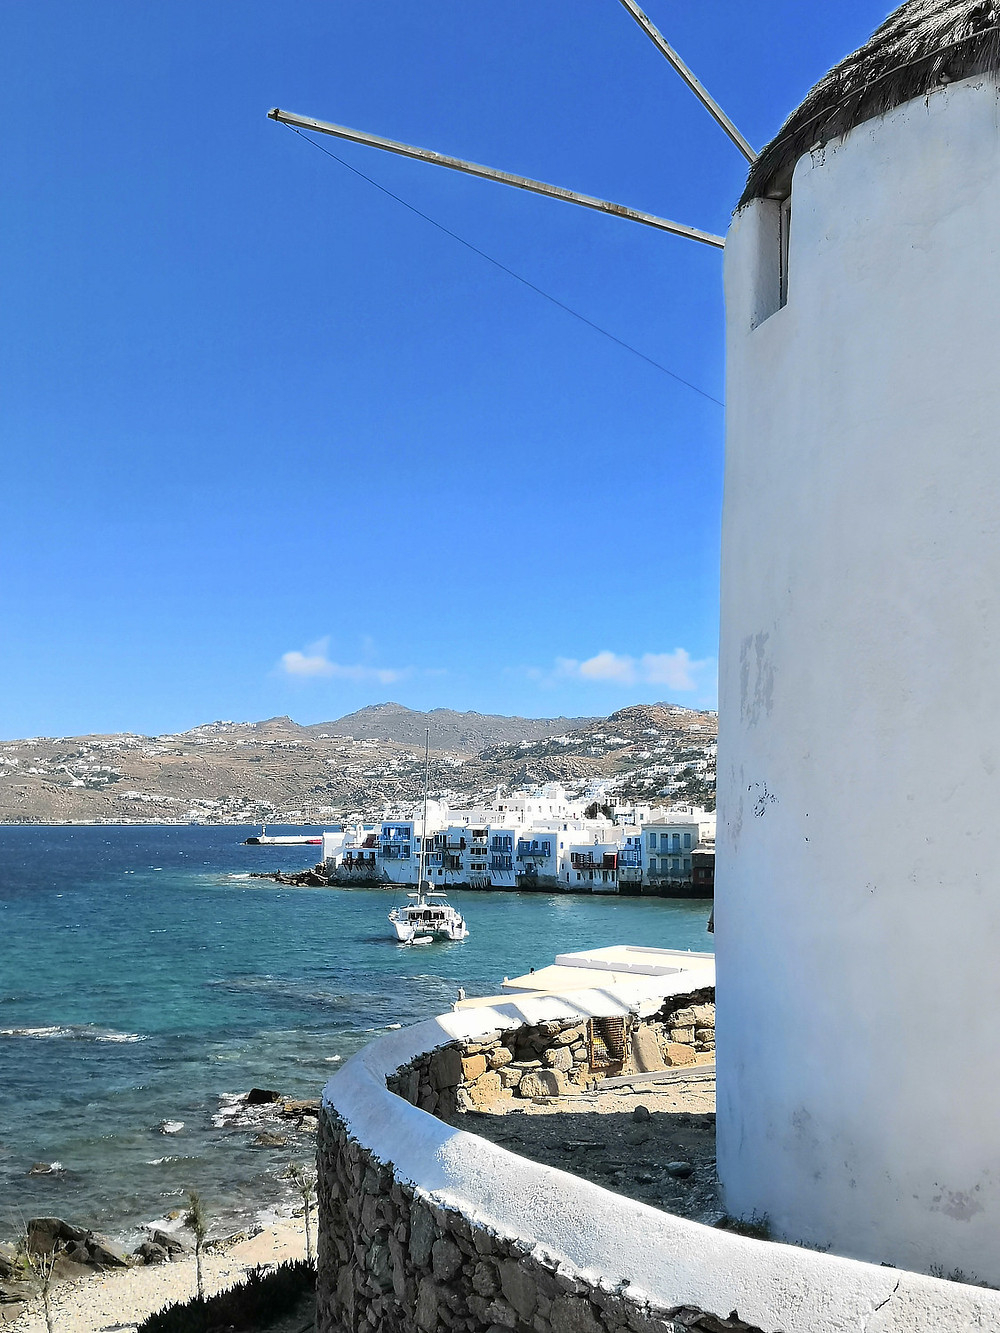 Little Venice and windmills in Mykonos town